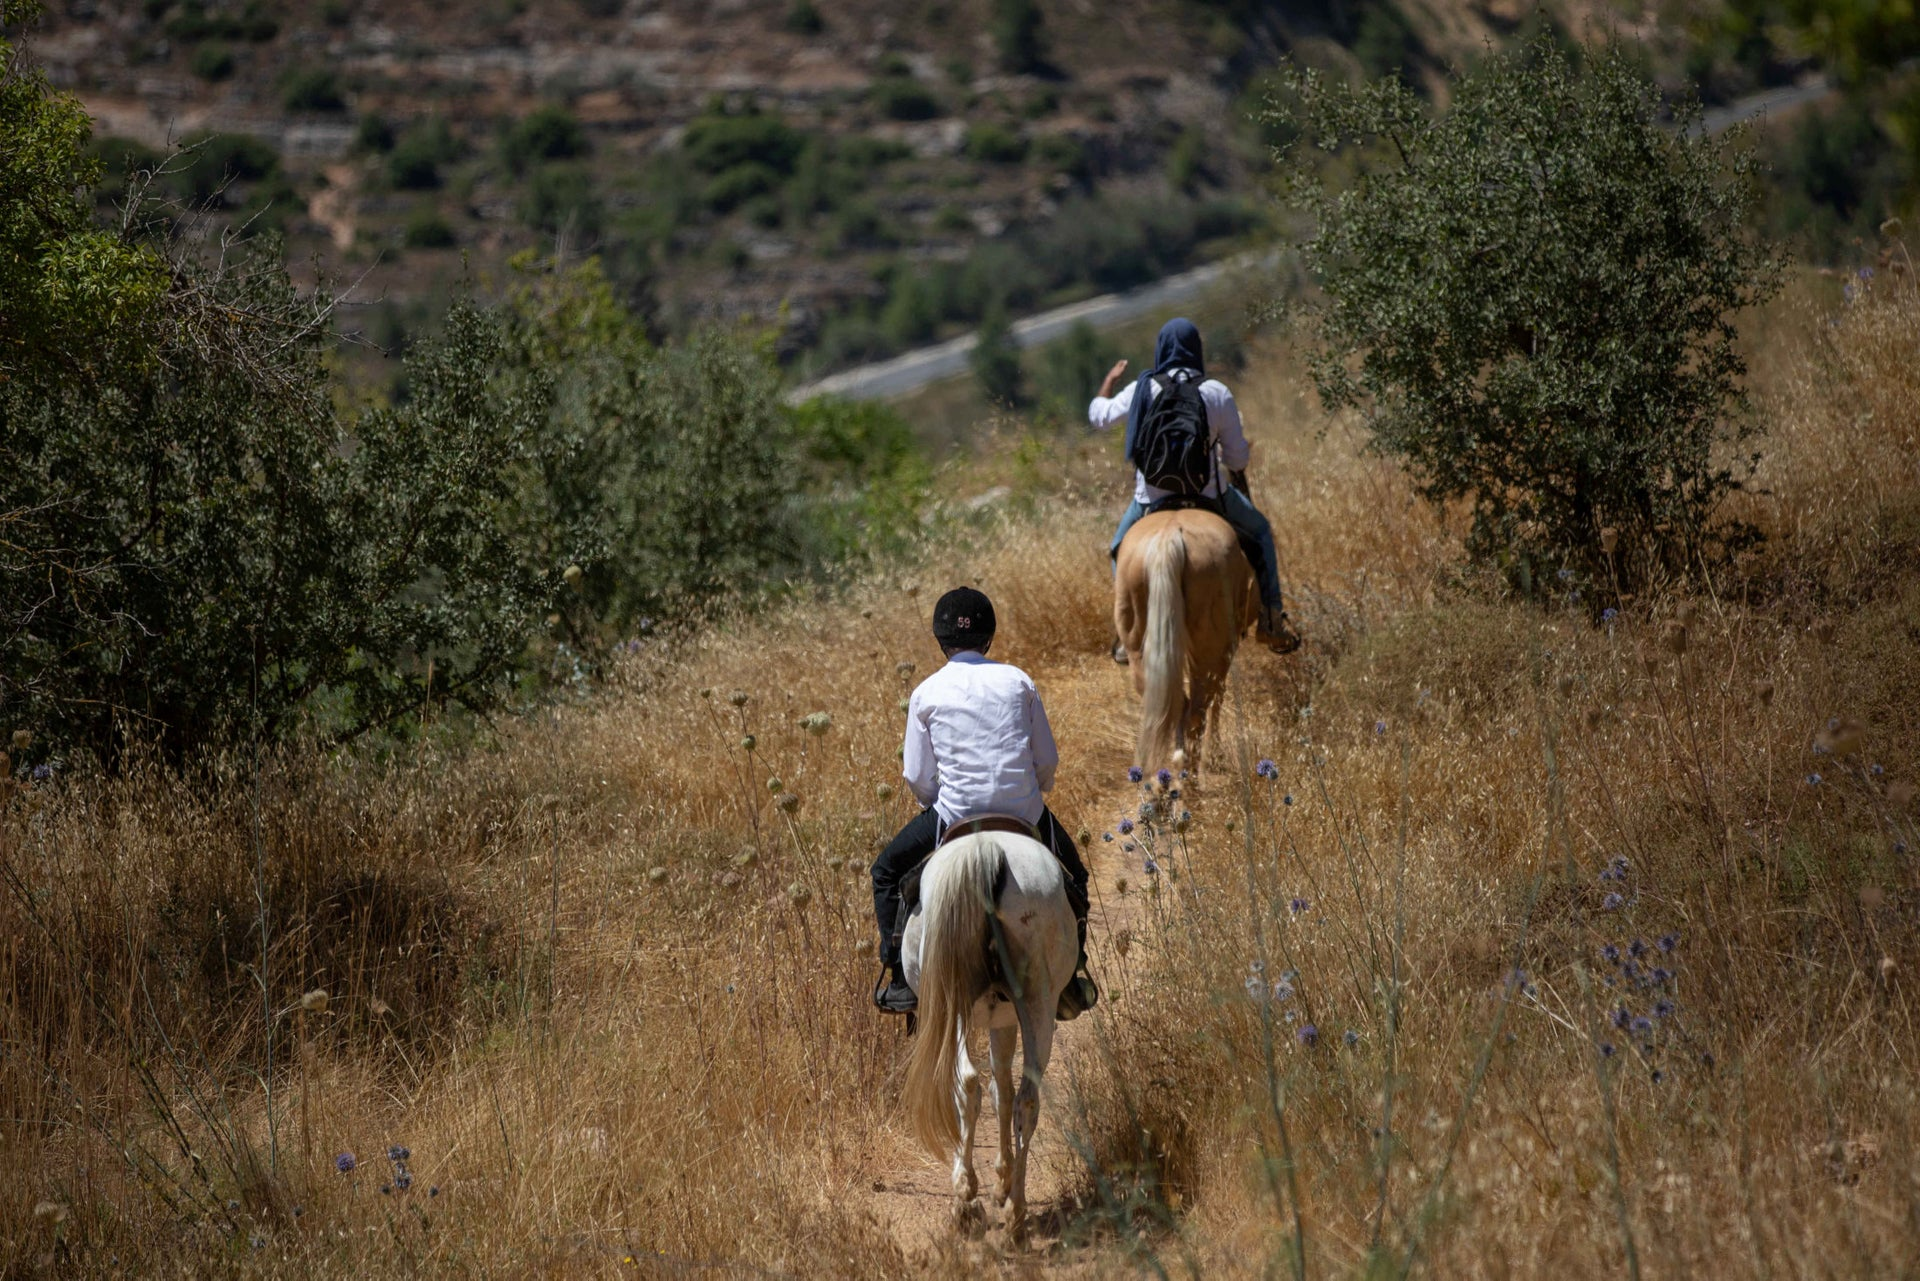 People ride on horseback in the Reches Lavan are, west of Jerusalem, June 2020. A mass construction project will build thousands of units, severely impacting the landscape.